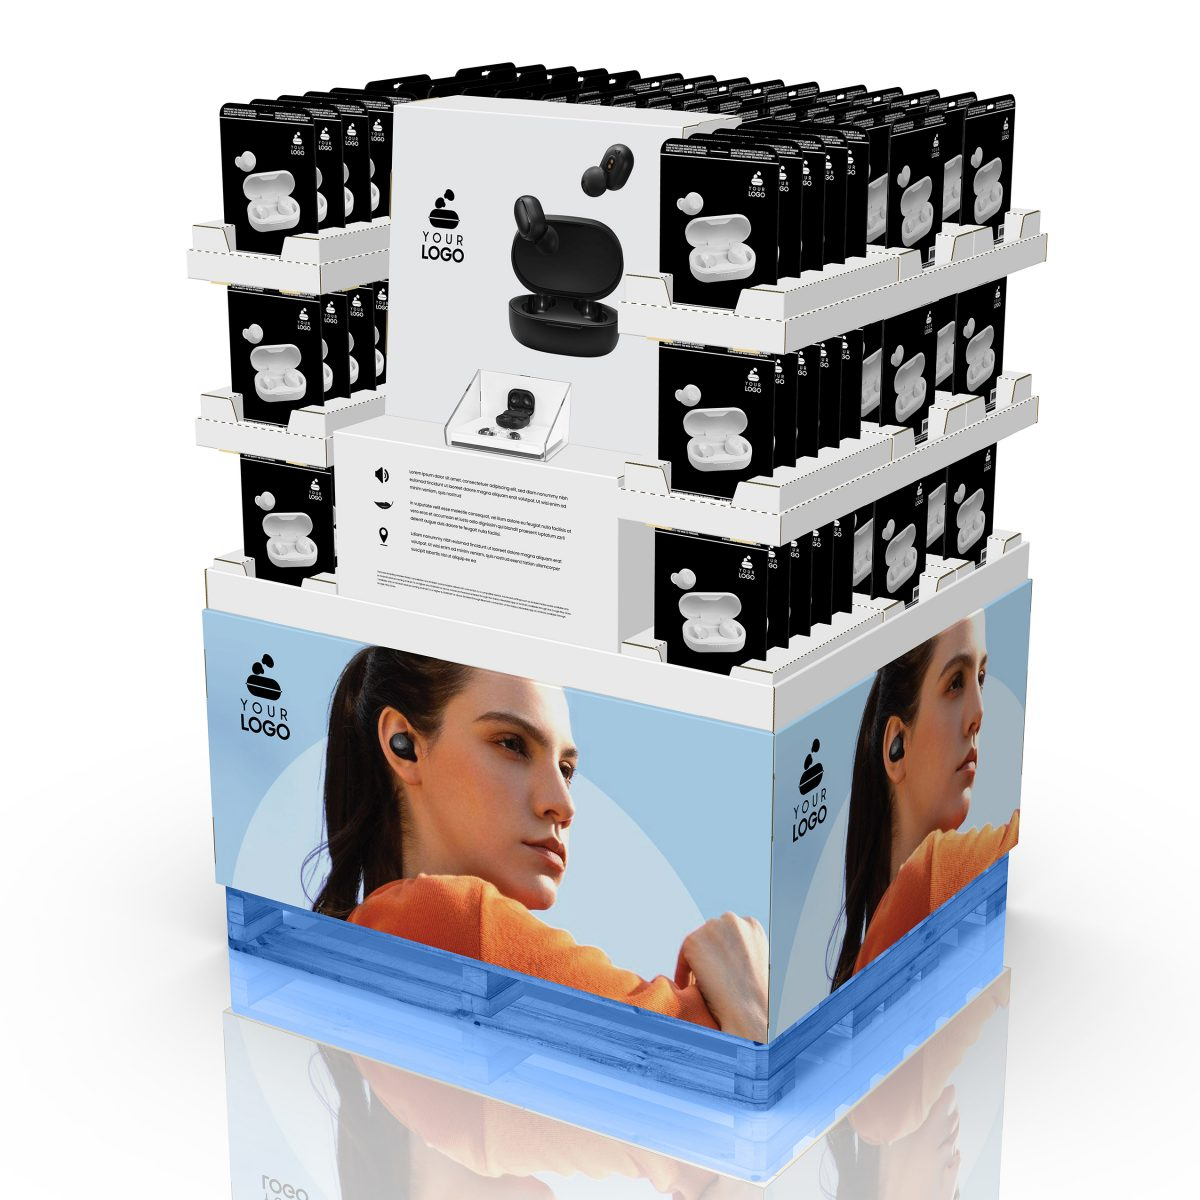 Multimedia Pallet for earbuds, with header and trays for voucher cards. Demo sample is placed in the middle, protected by a custom plastic mold.